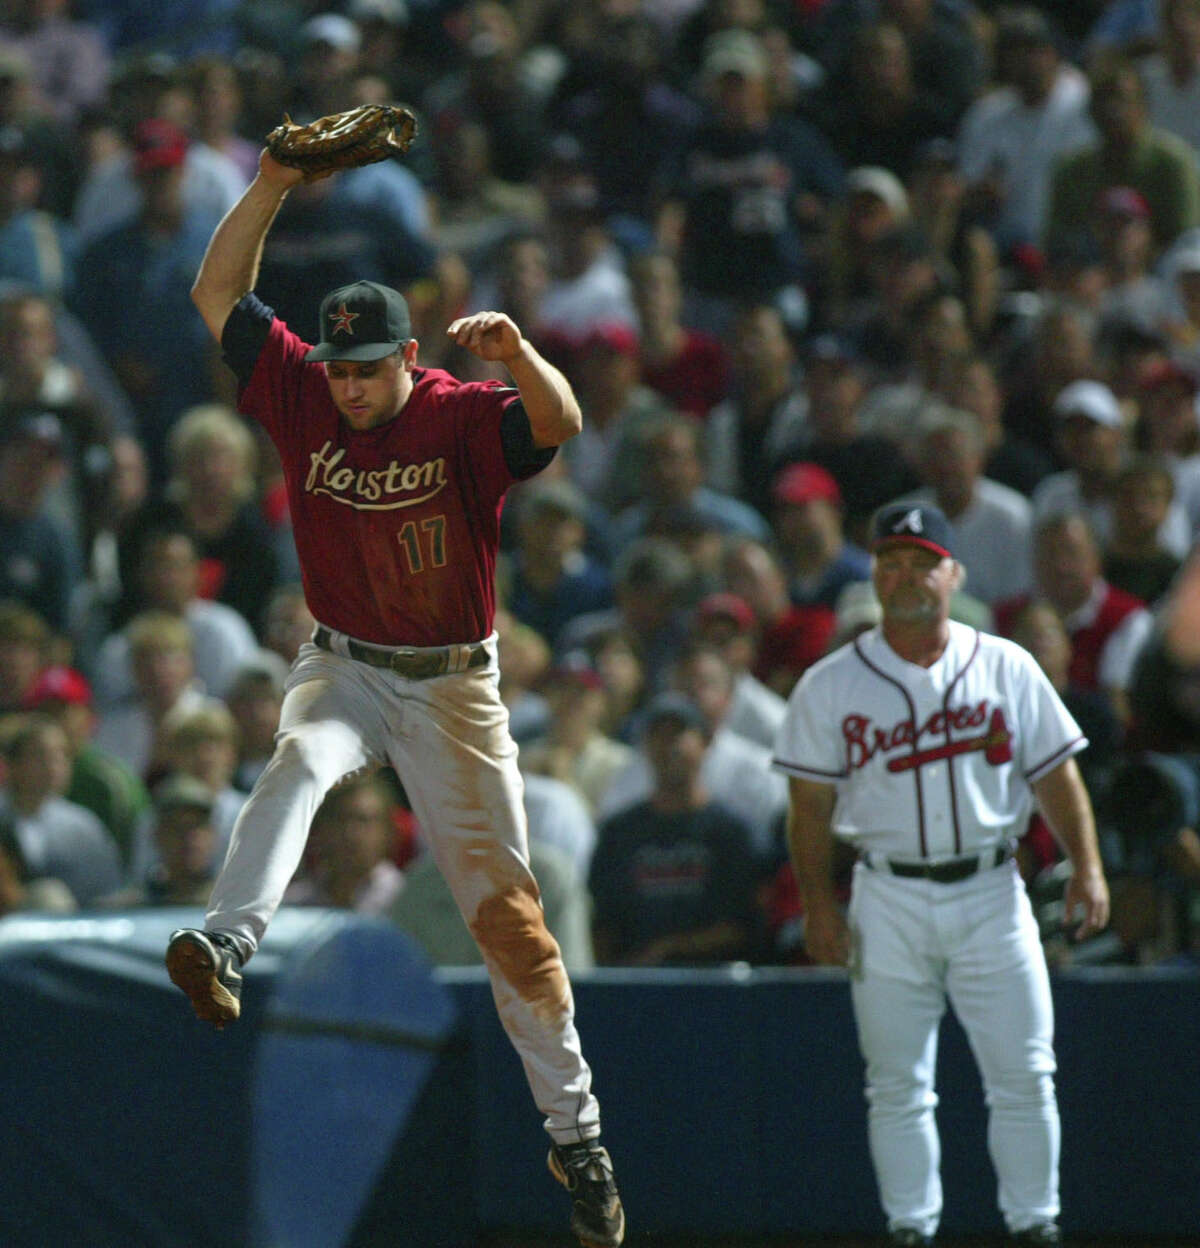 Lance Berkman leaps up to catch the ground ball hit by Andruw Jones during the 5th inning of Game Two of the National League Division Series, between the Houston Astros and the Atlanta Braves, at Turner Field in Atlanta, Georgia, Thursday, October 6, 2005(Karen Warren/Houston Chronicle)